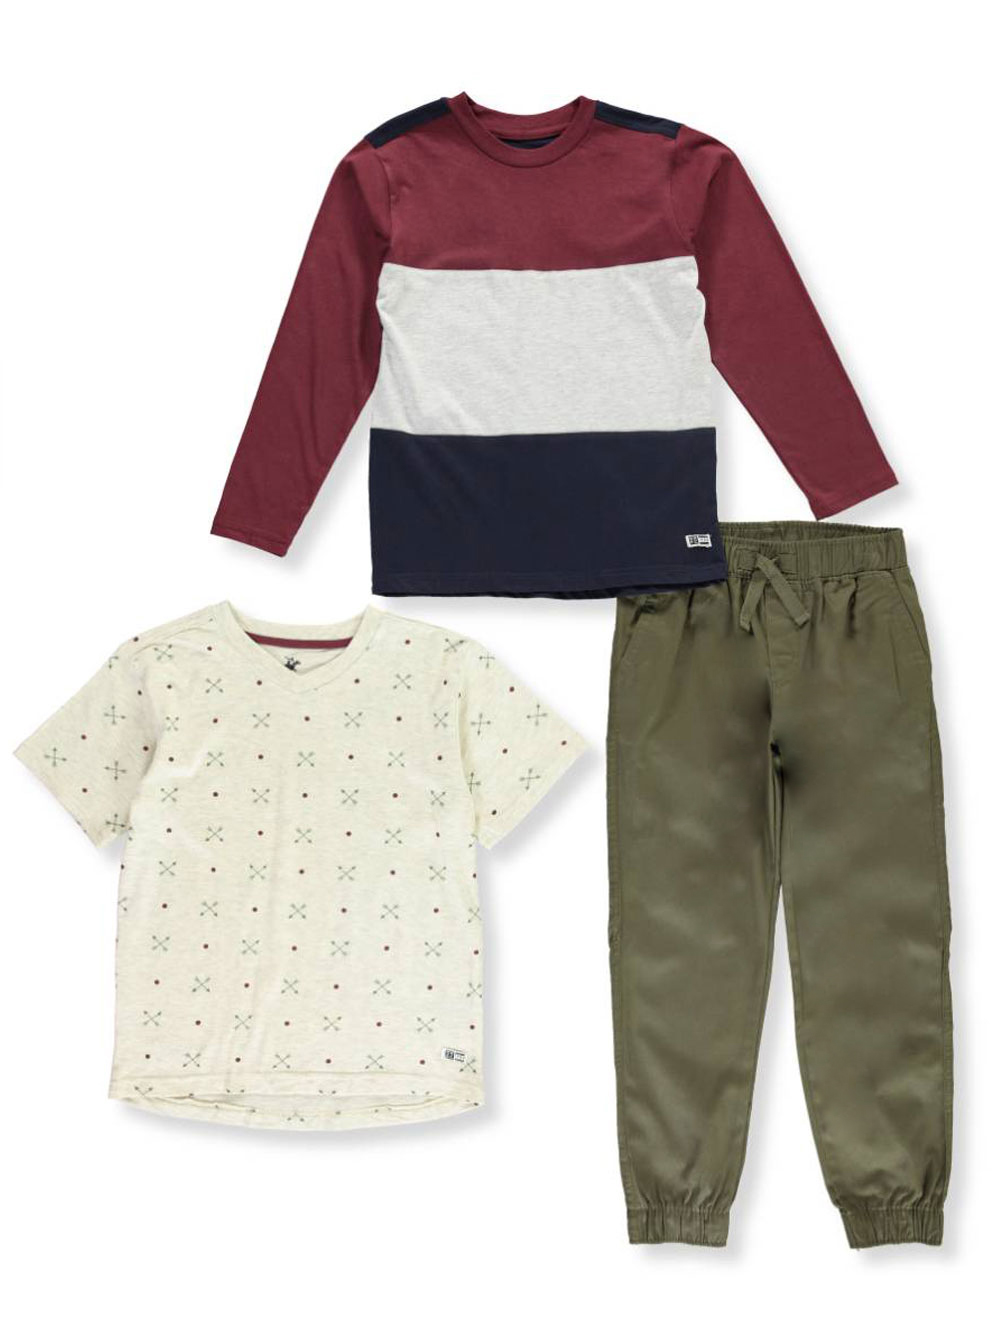 Size 12 Pant Sets for Boys